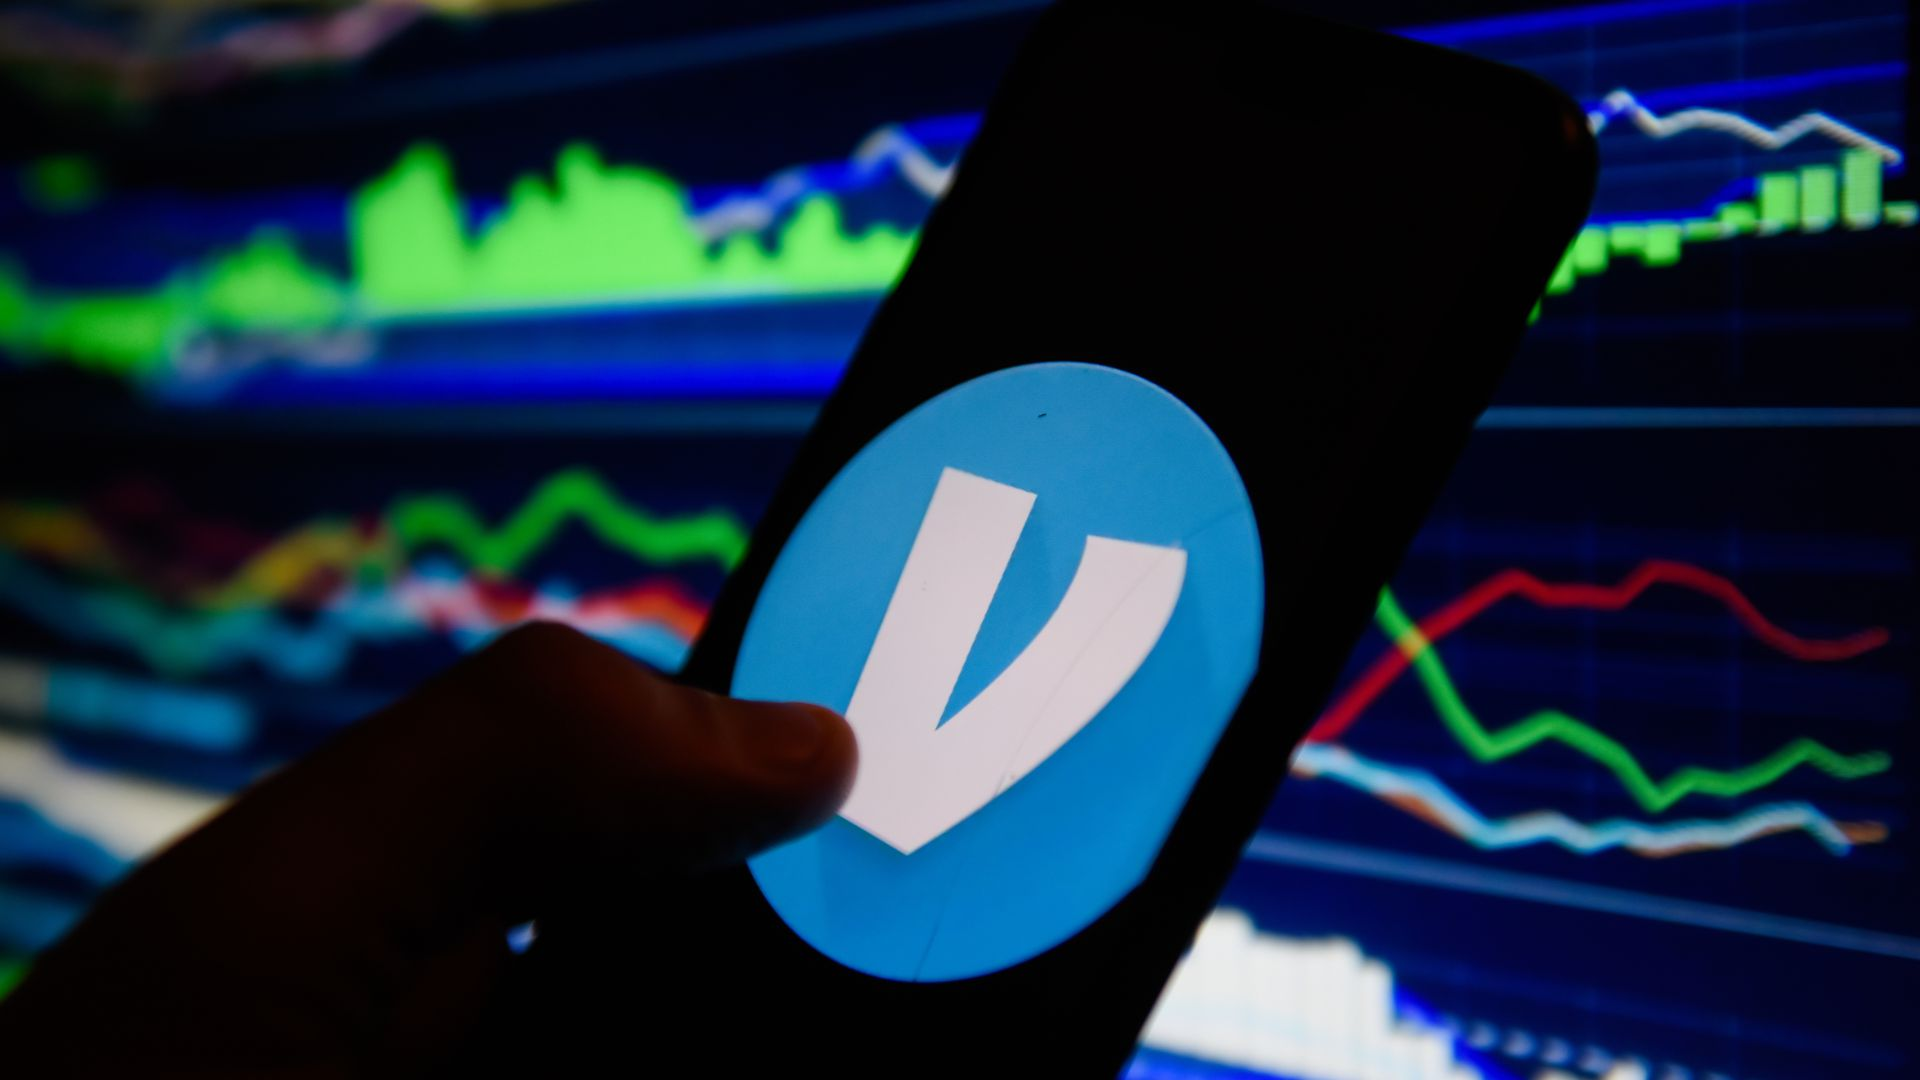 In this image, someone holds a smartphone with the Venmo logo displayed